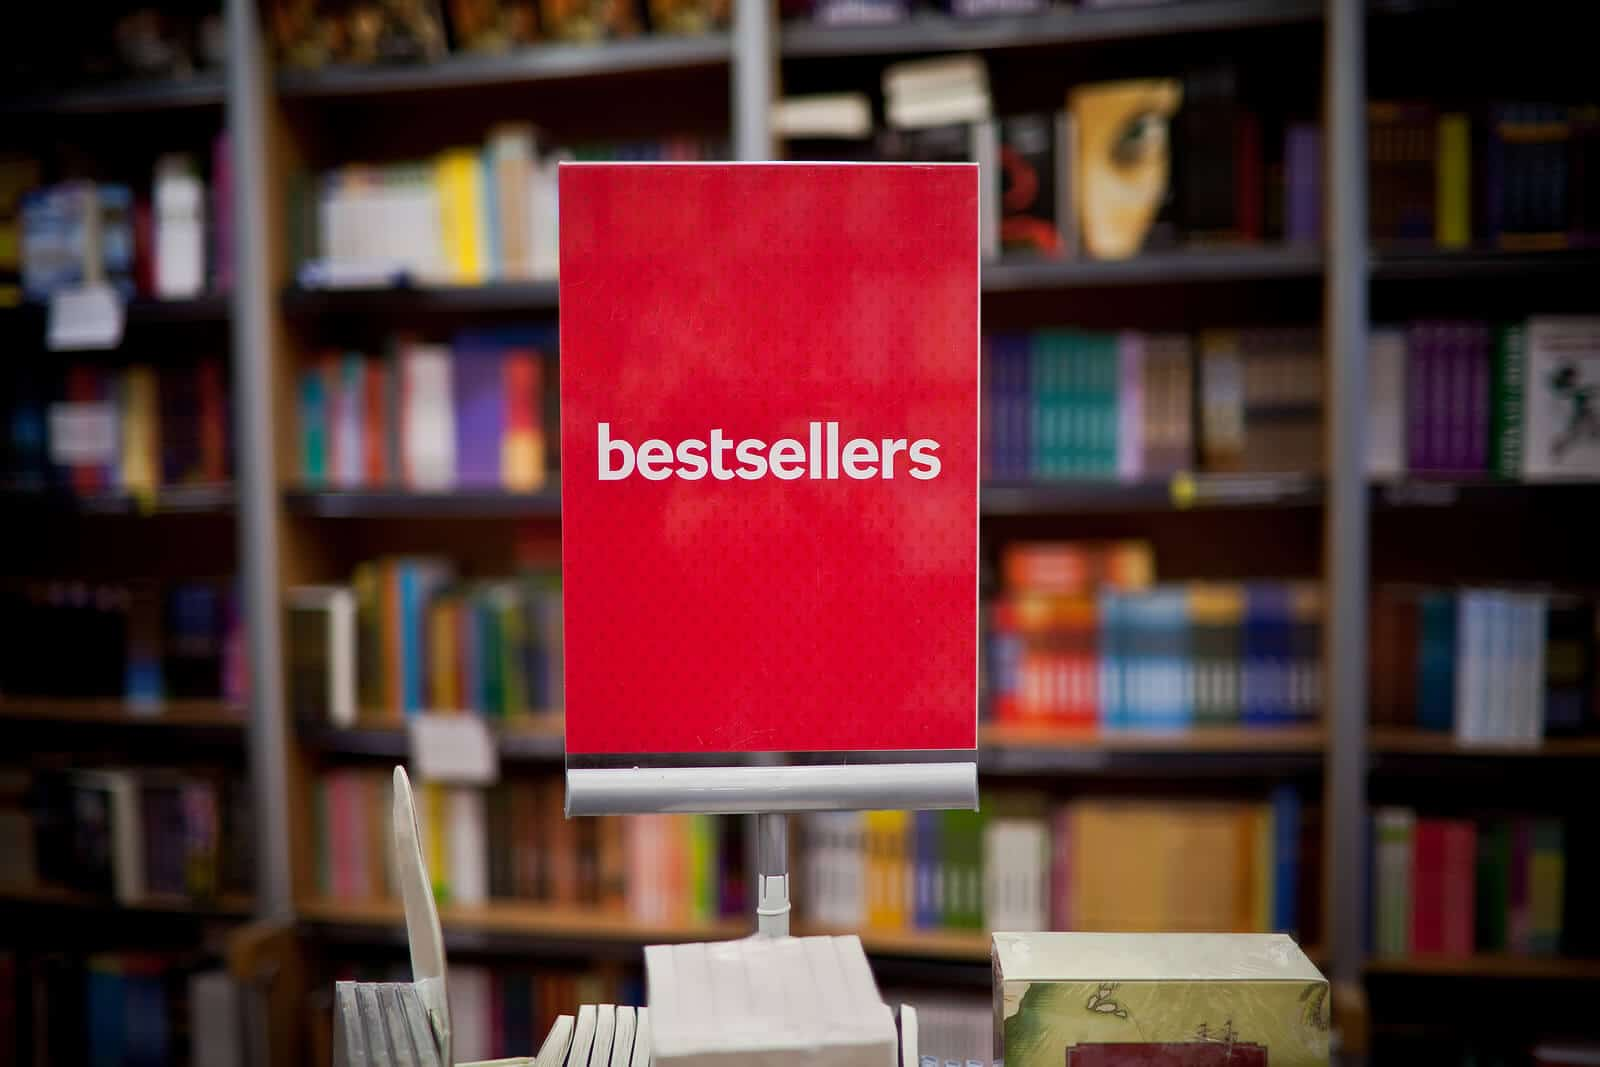 Bestsellers area in bookshop